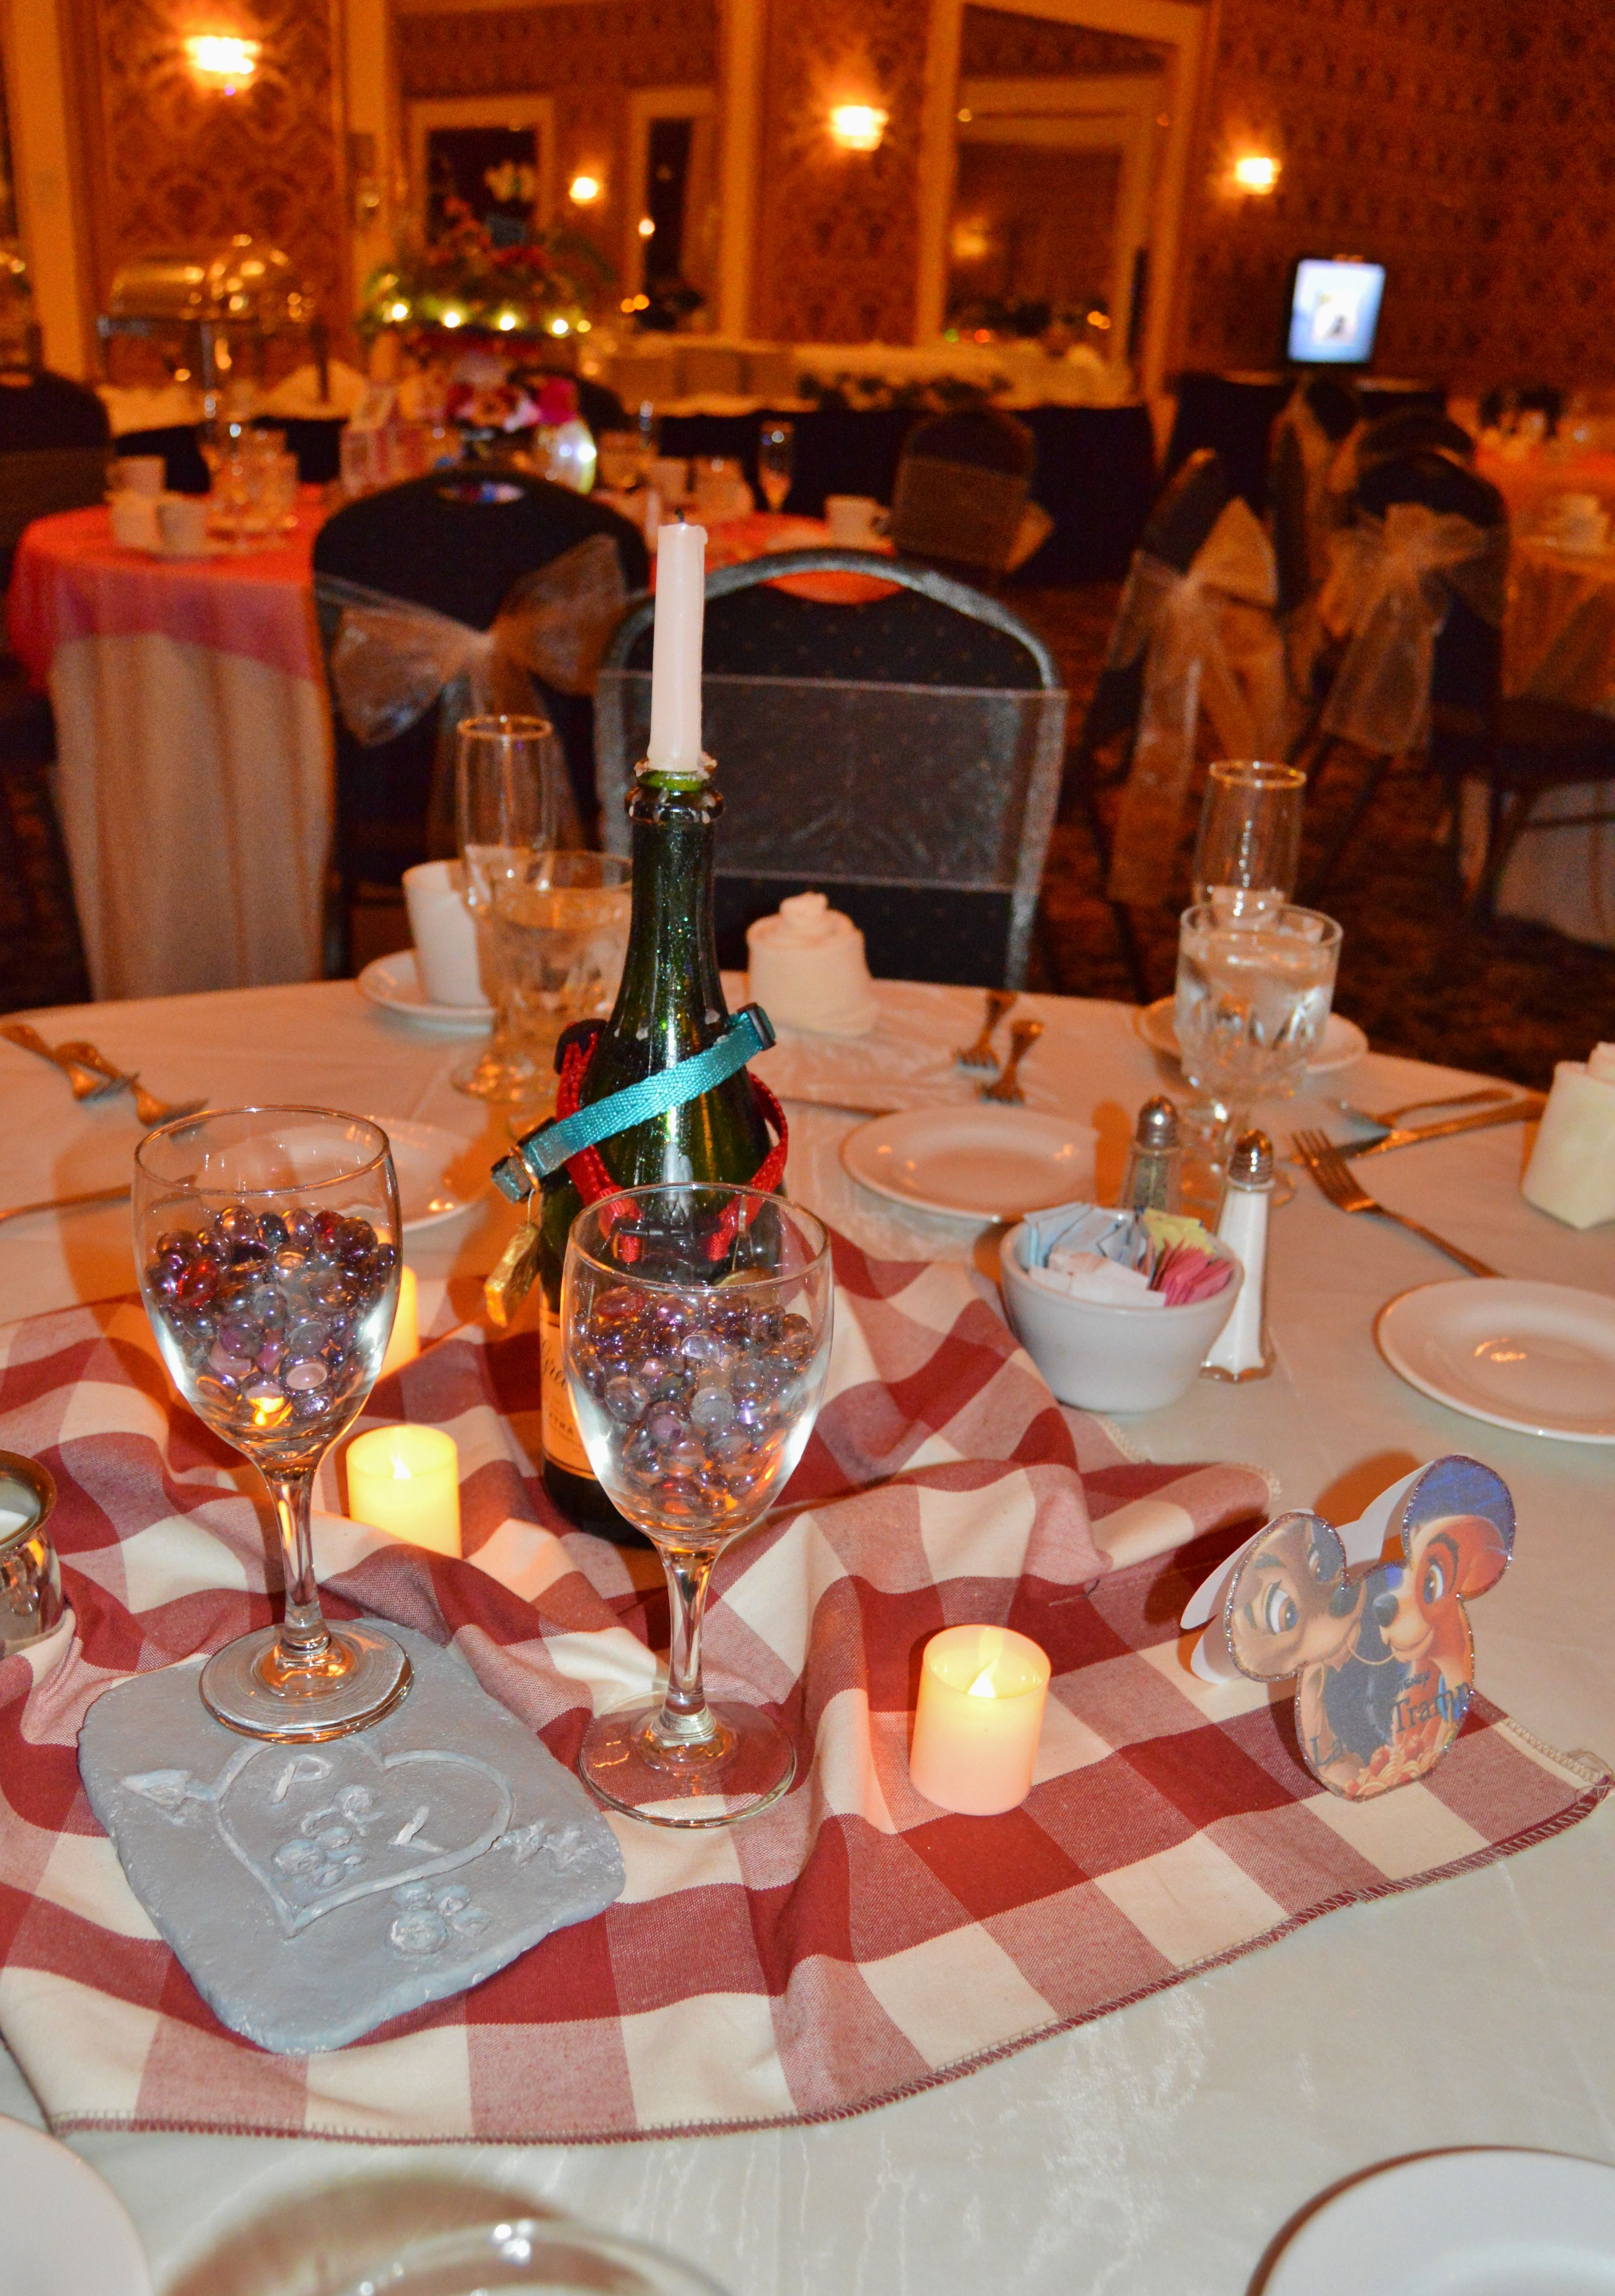 Disney Lady And The Tramp Inspired Centerpiece Disney Wedding Centerpieces Disney Wedding Theme Disney Centerpieces